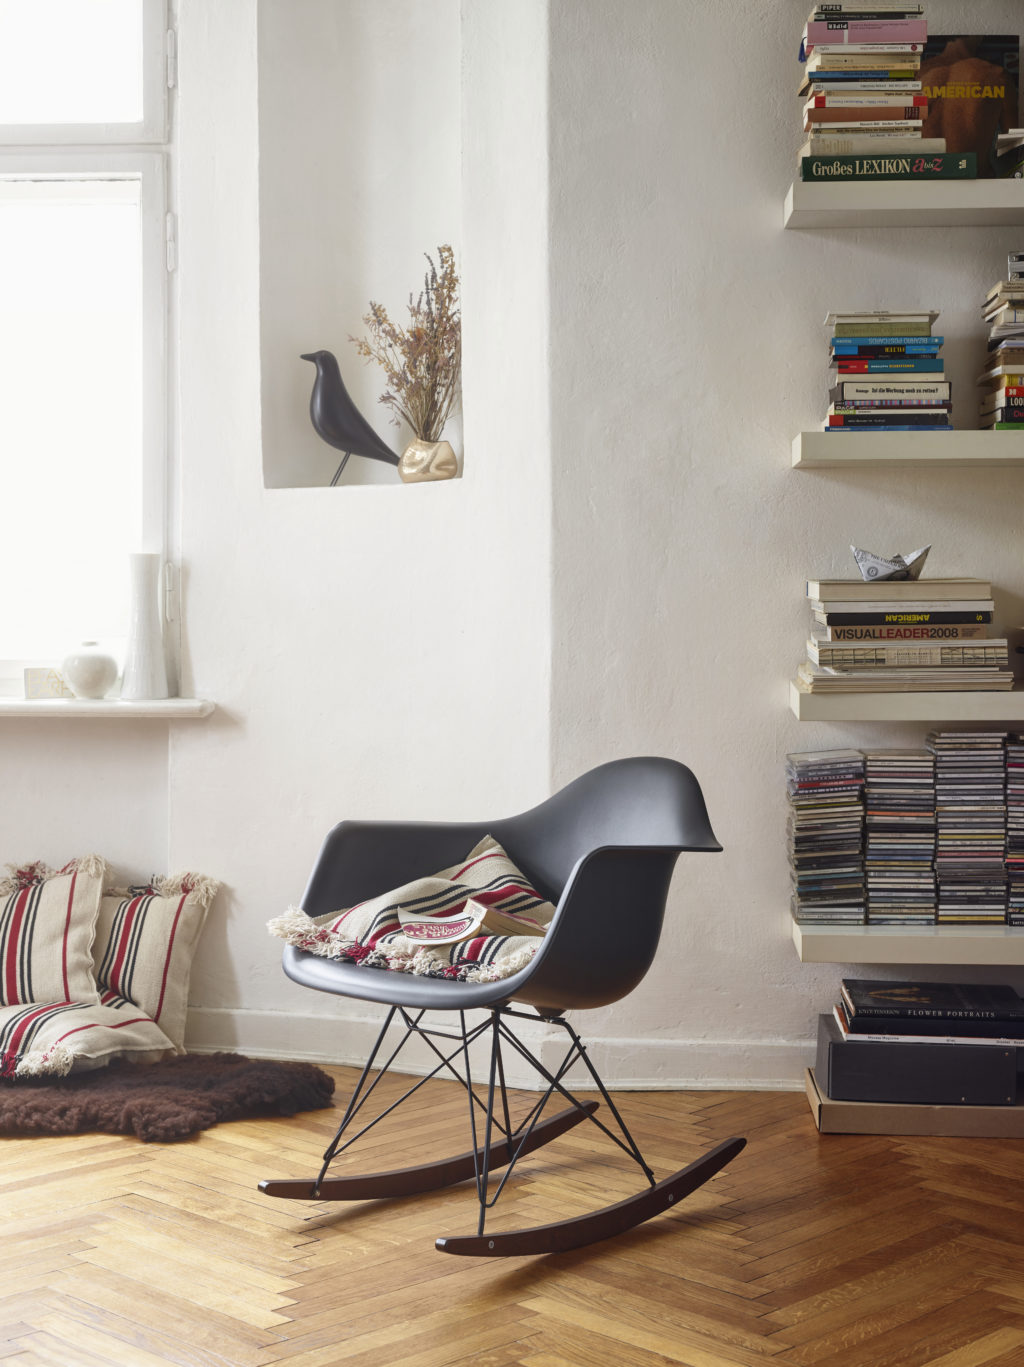 herbst highlight rar schaukelstuhl von vitra designblog. Black Bedroom Furniture Sets. Home Design Ideas